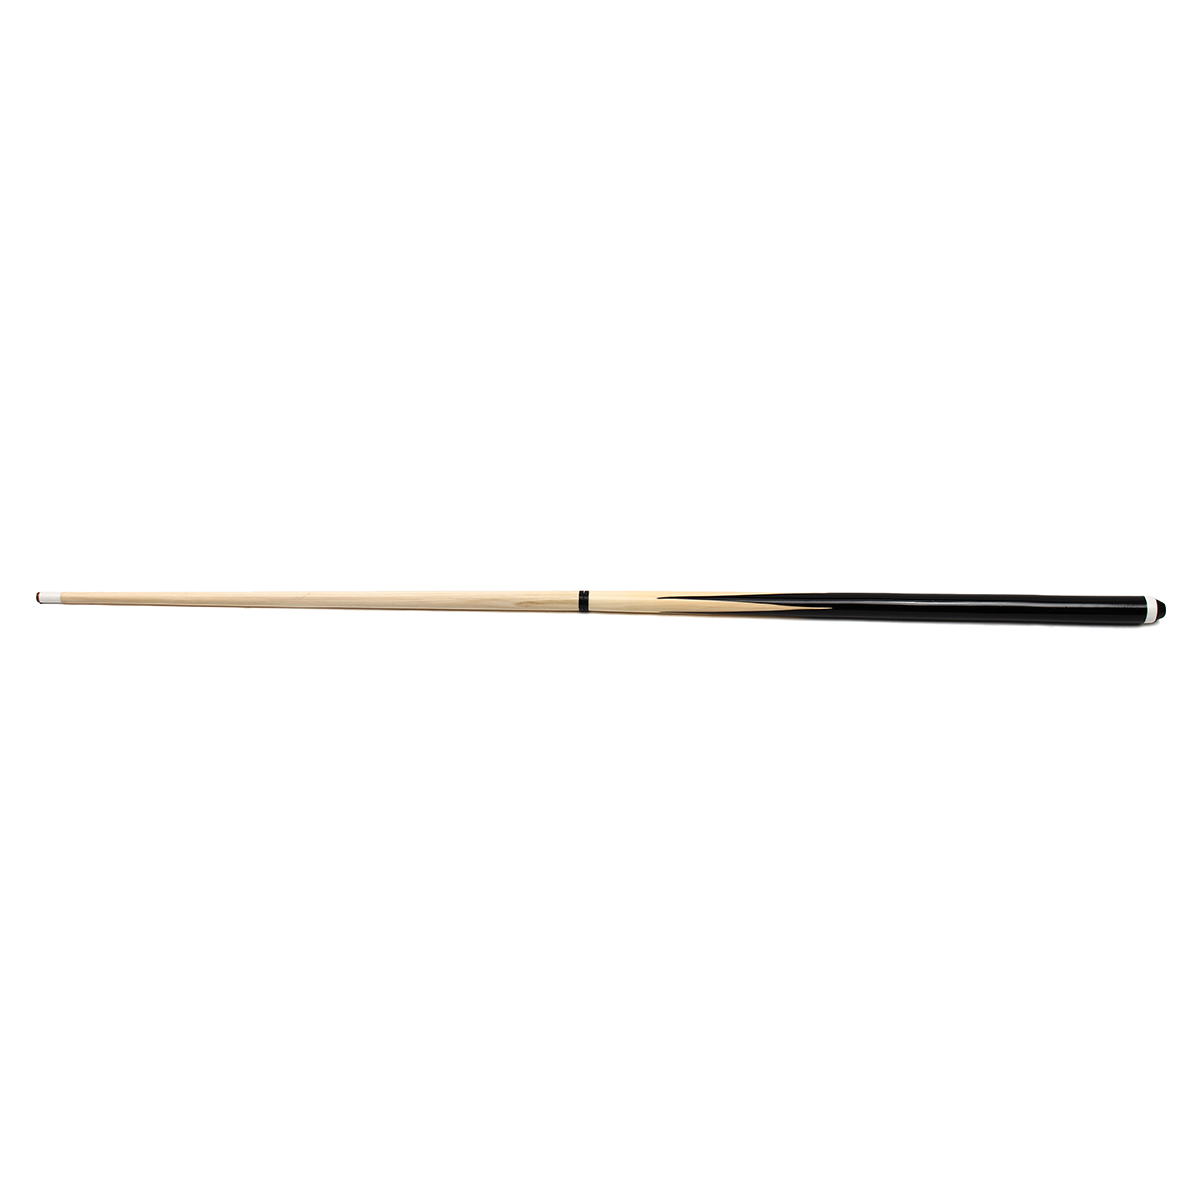 1 Pcs 48inch Short Wooden Pool Billiards Stick Snooker Cue Table Tennis Rod